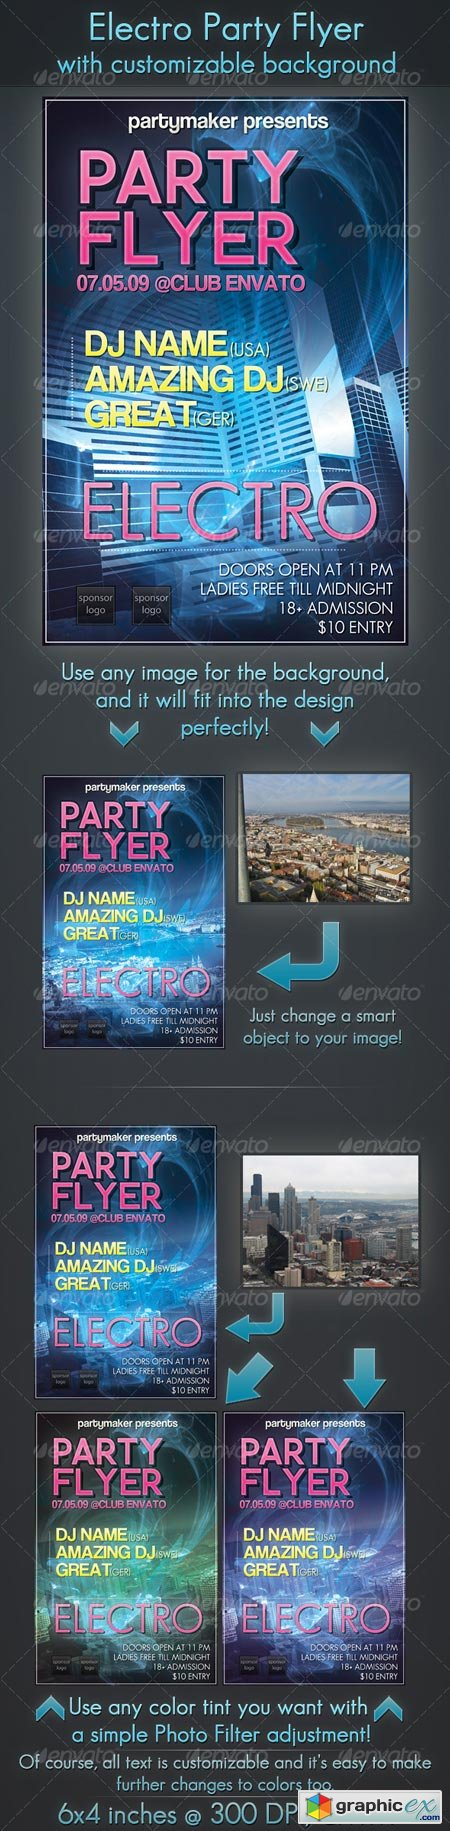 Electro Party Flyer with Customizable Background 125856